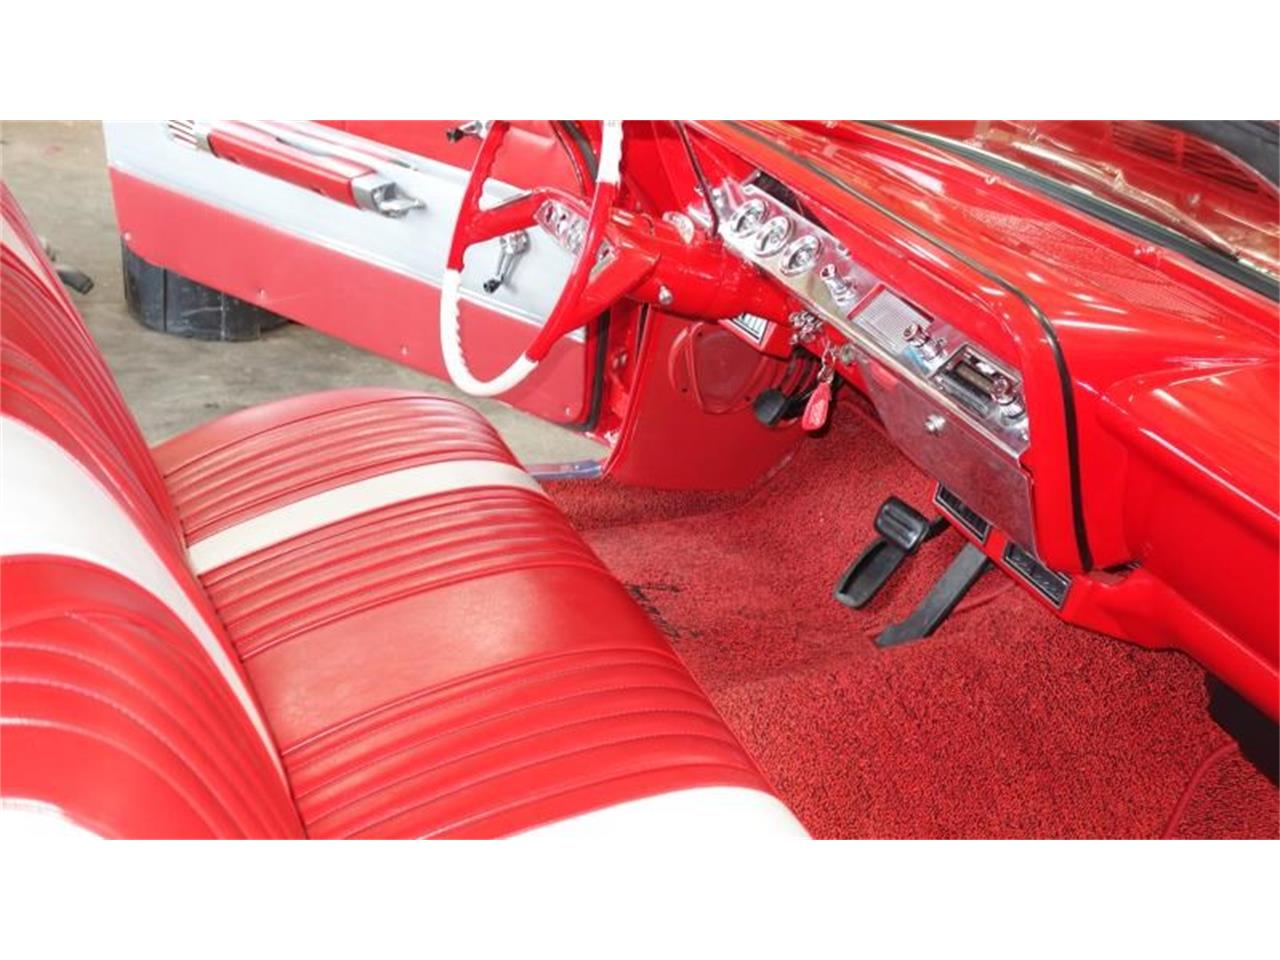 Large Picture of Classic 1961 Chevrolet Impala - $75,000.00 - L66A